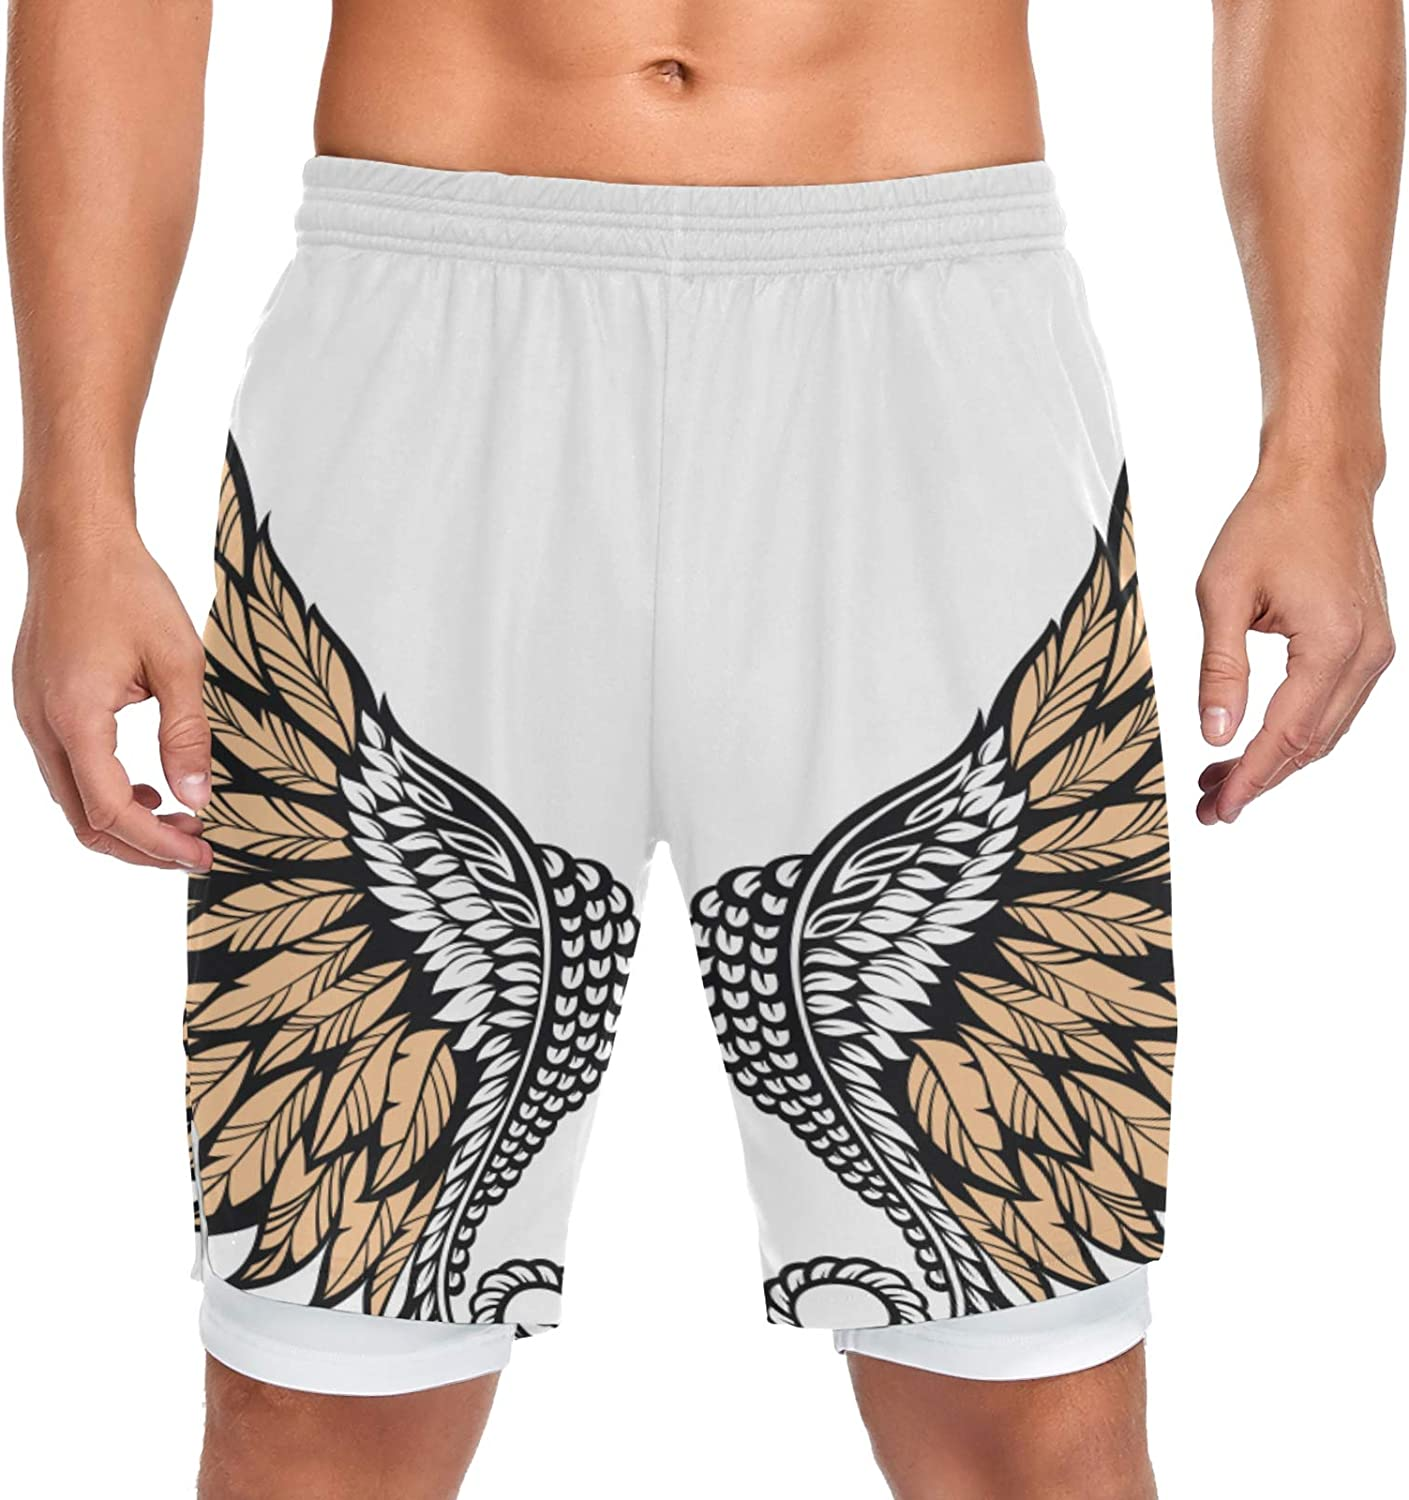 XDCGG Running Shorts Angel Credence Wings Spo White Isolated 2021 Training Men